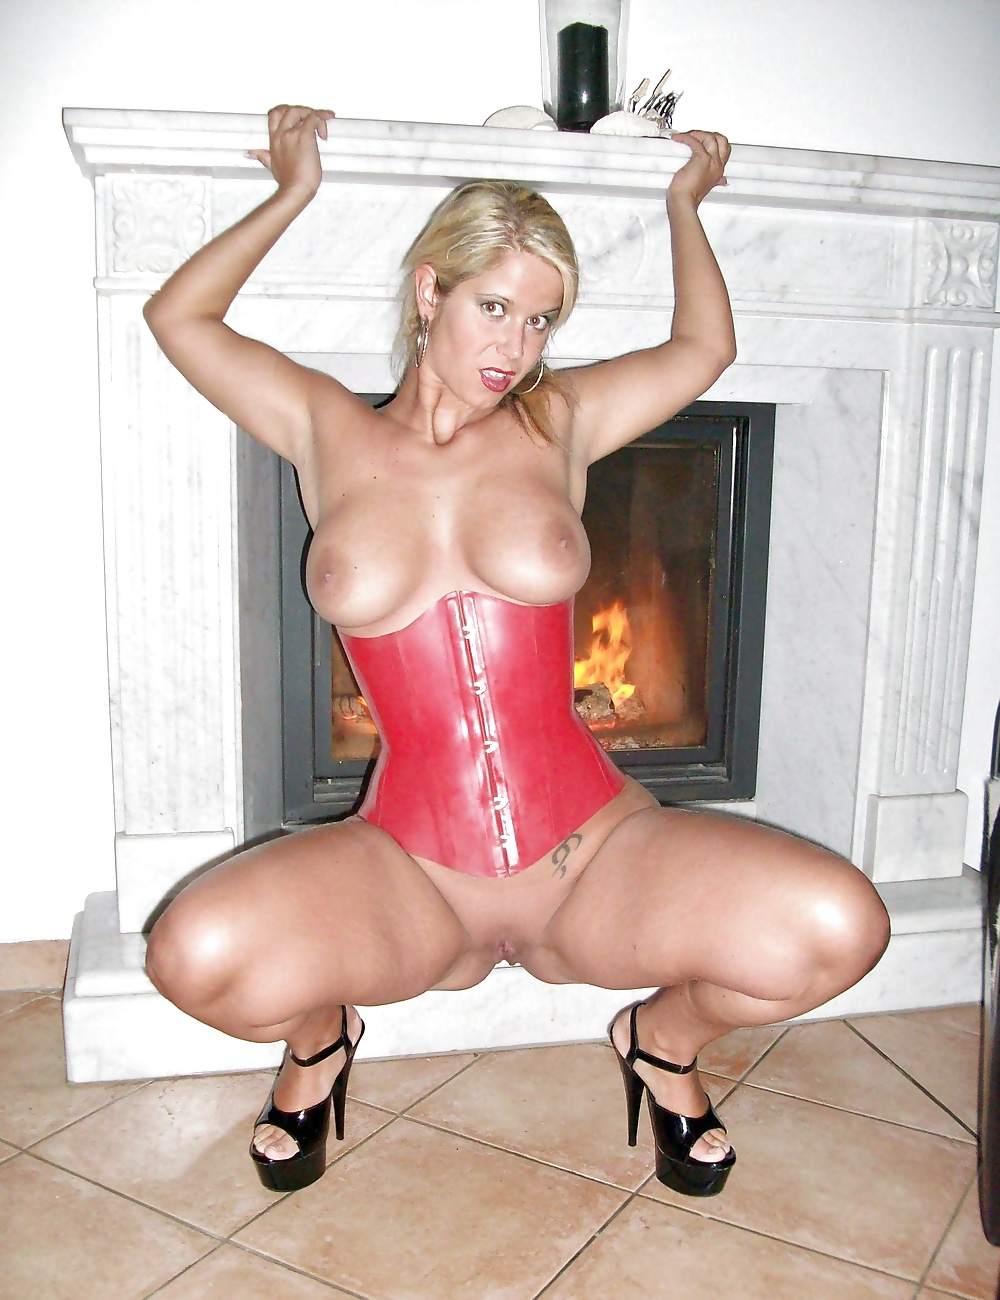 Insert your toy piece here adult photos